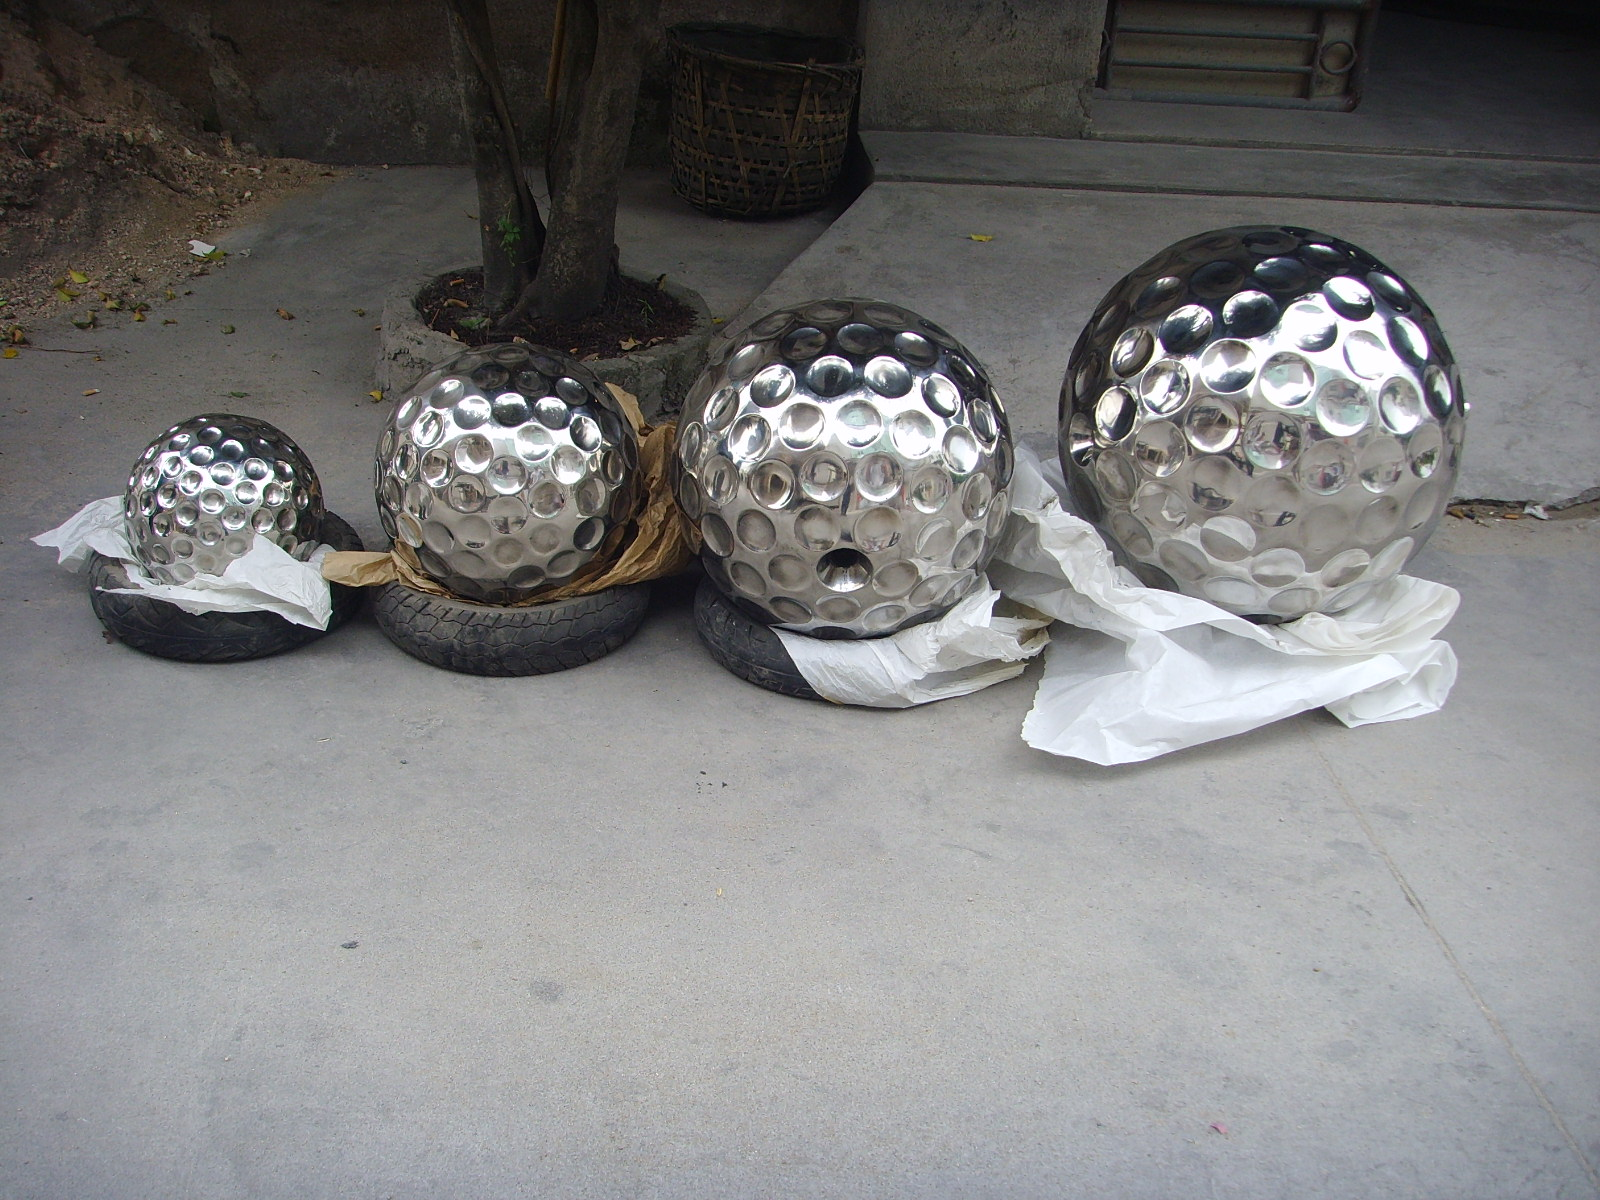 Large decorative stainless steel balls